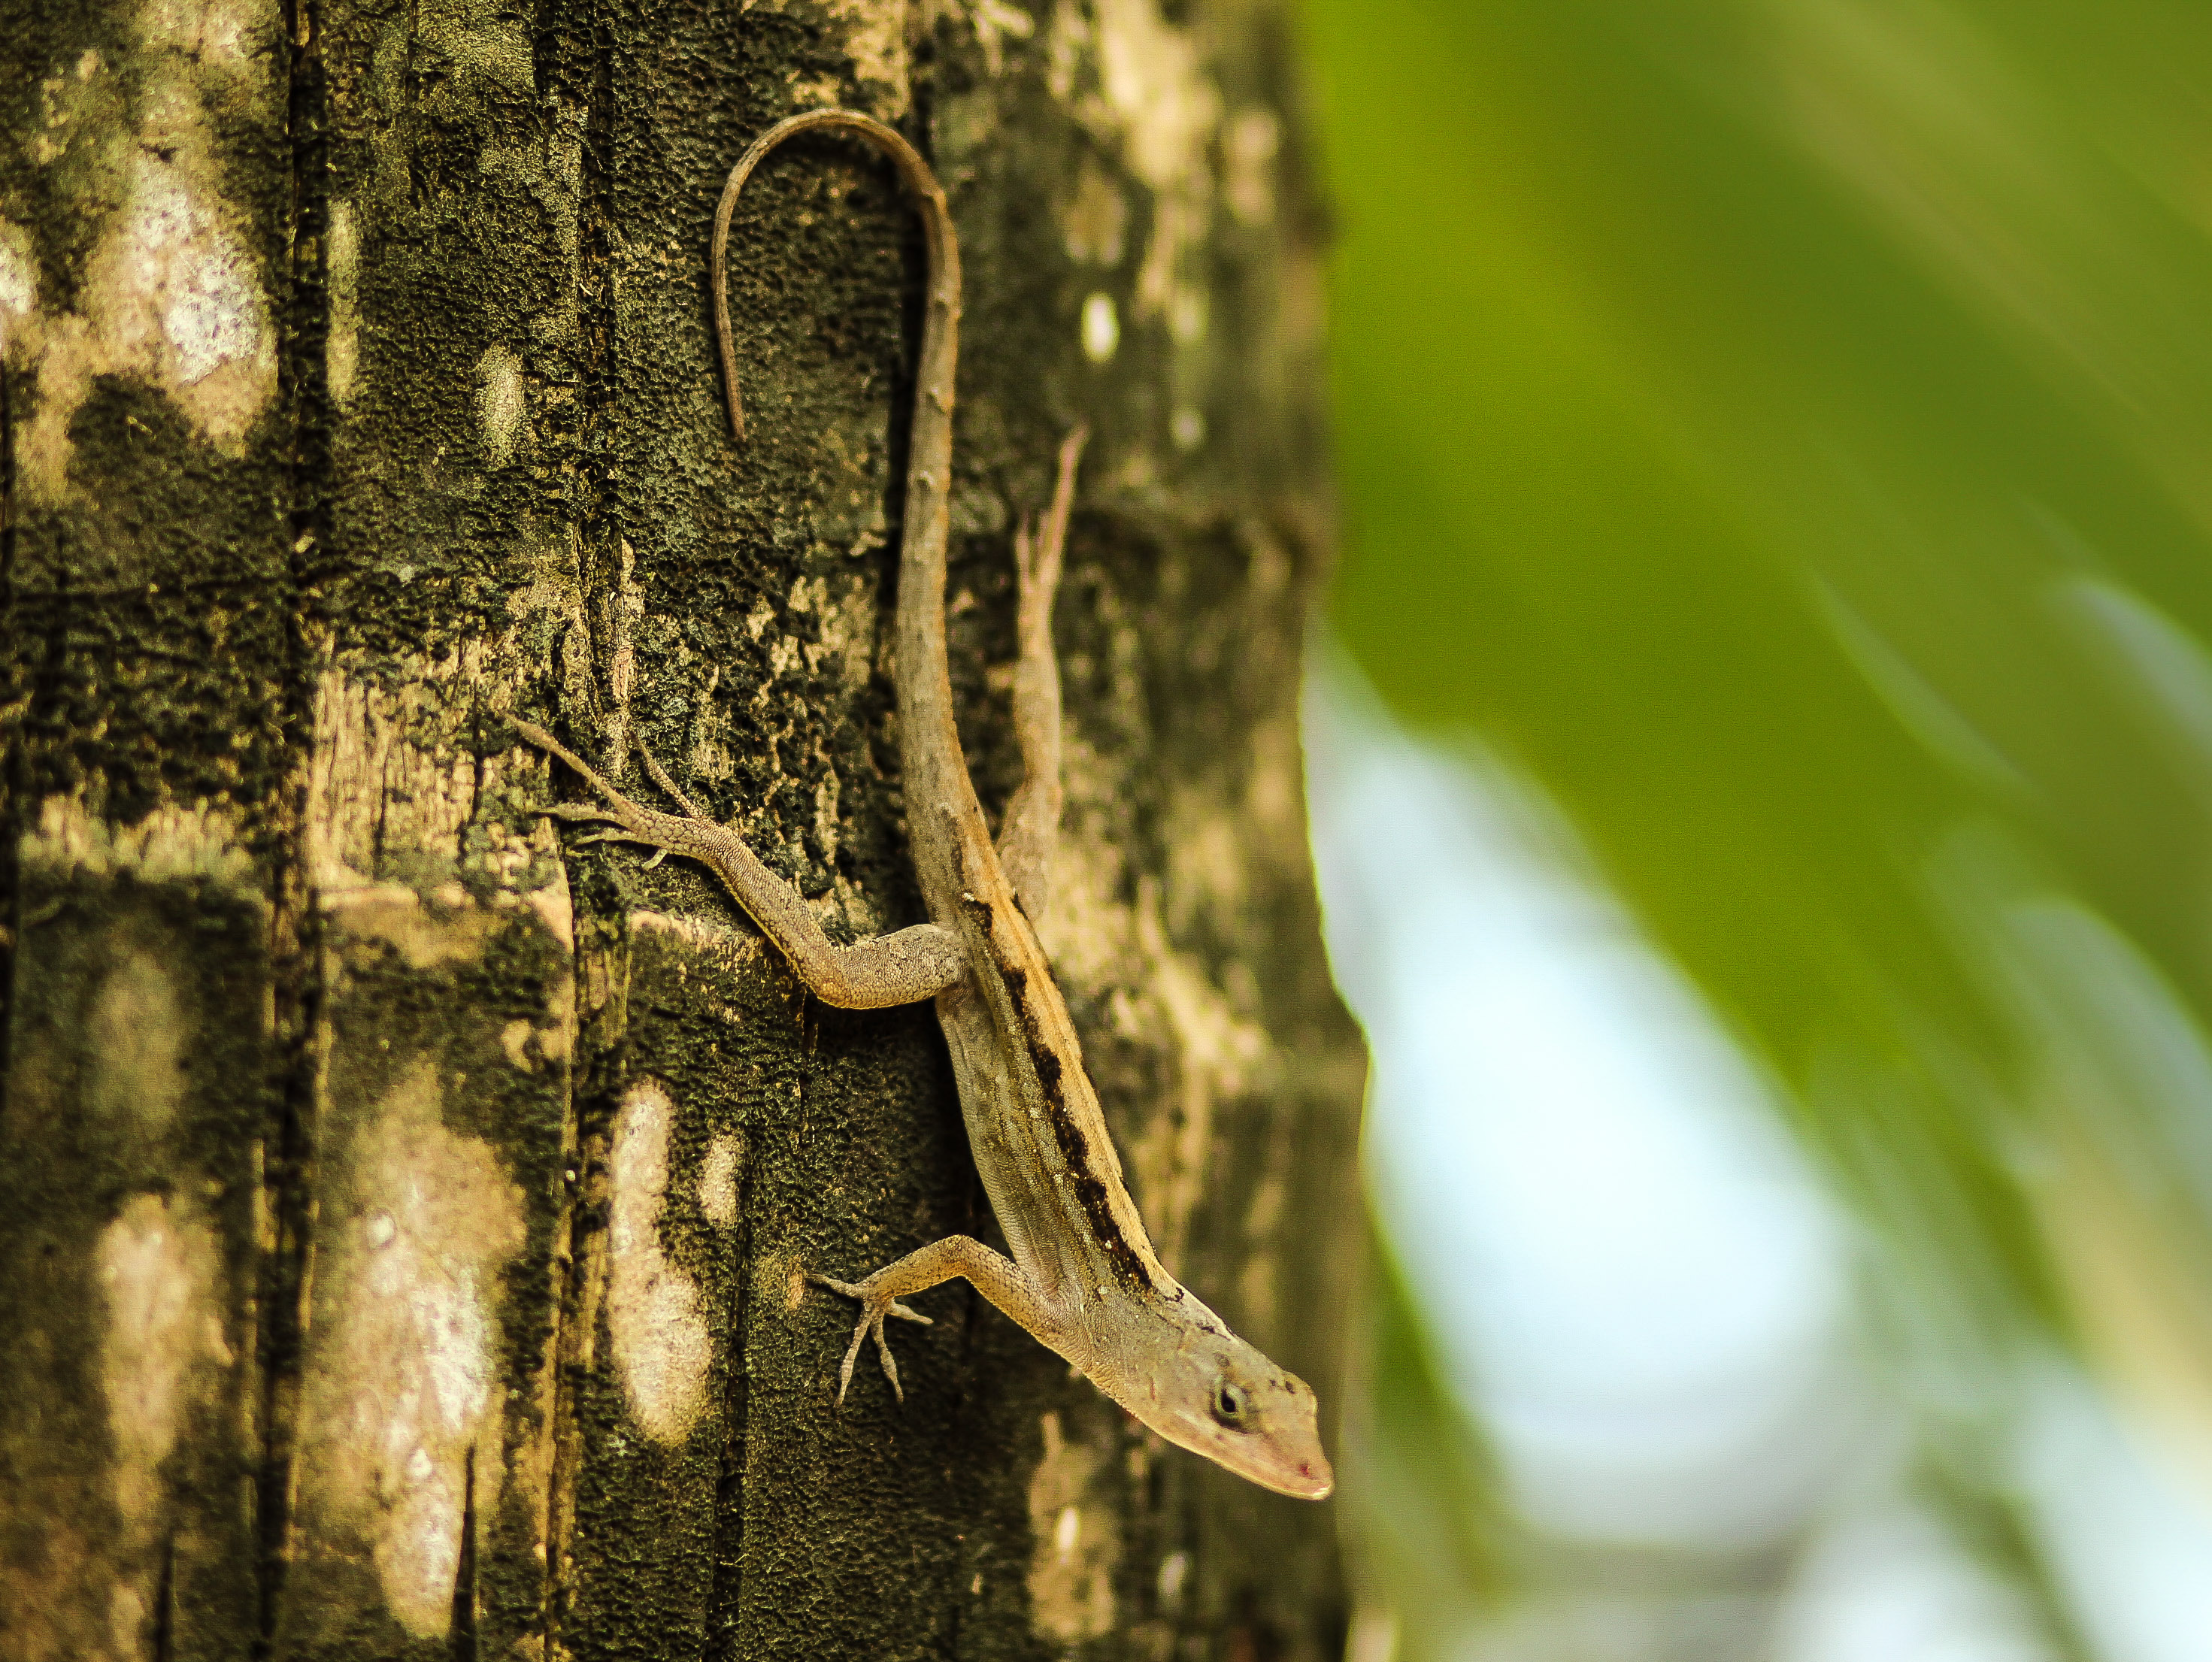 Lizard in Yucatan jungle